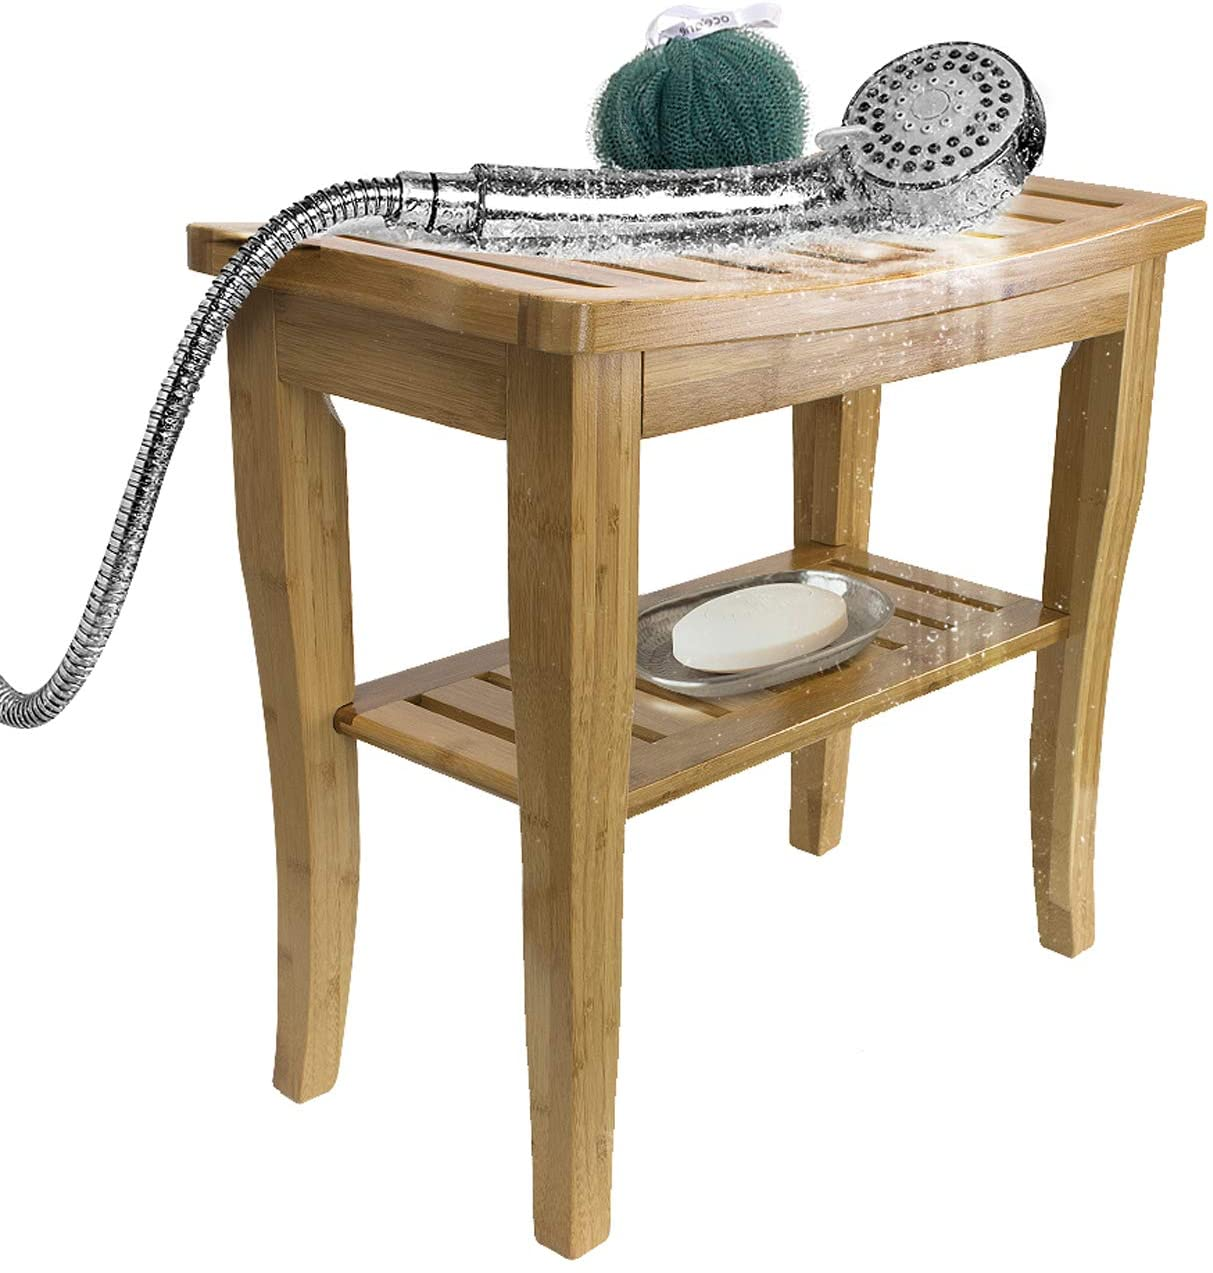 Sorbus Bamboo Shower Bench Stool with Shelf